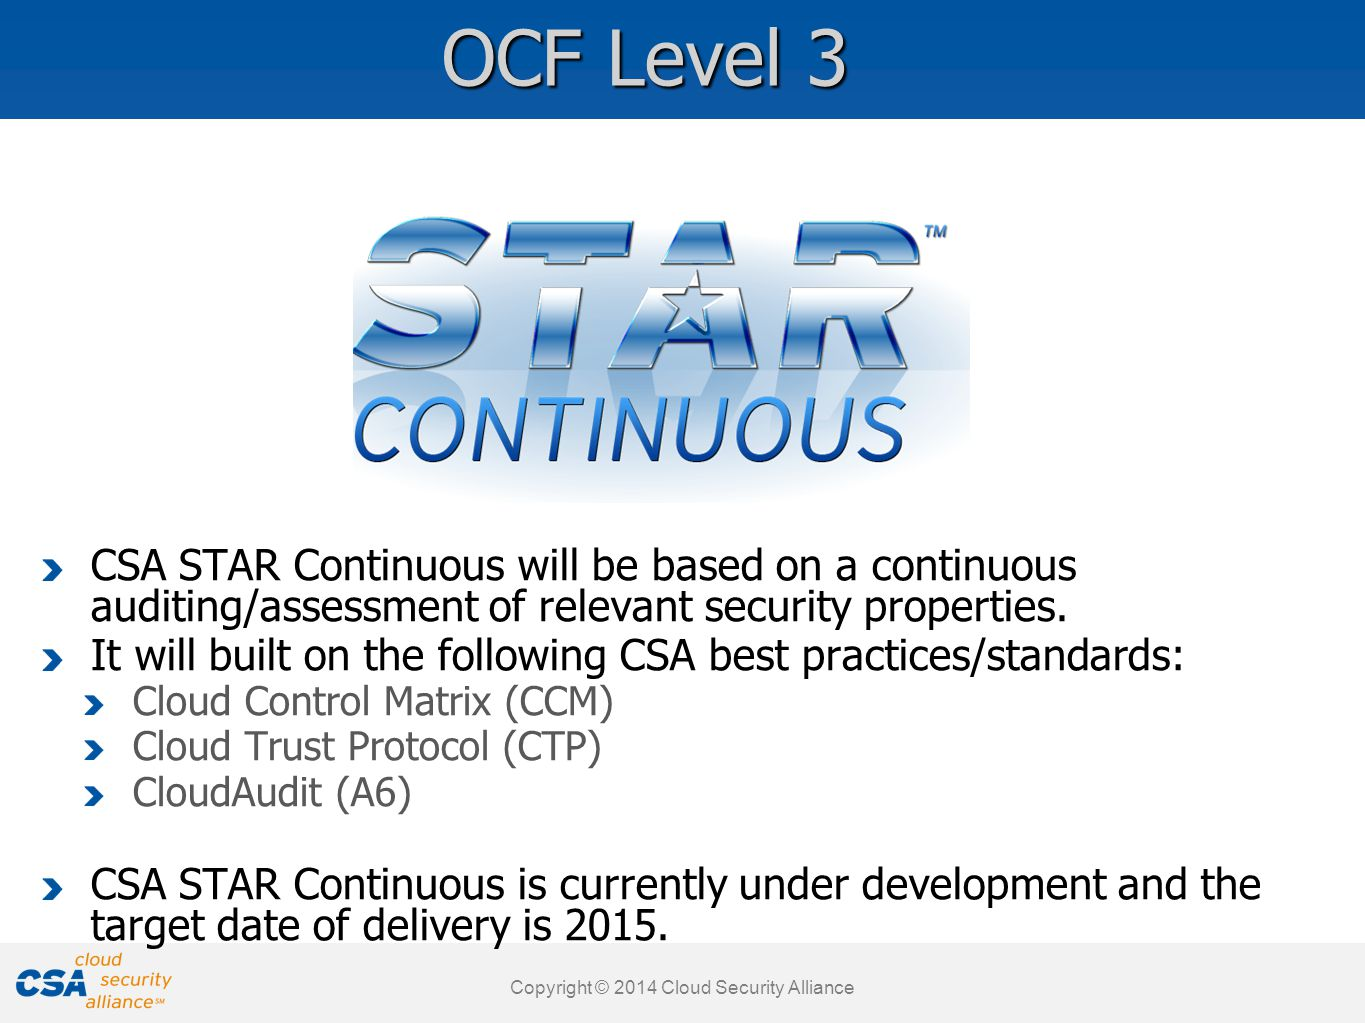 www.cloudsecurityalliance.org Copyright © 2011 Cloud Security Alliance CSA STAR Continuous will be based on a continuous auditing/assessment of relevant security properties.